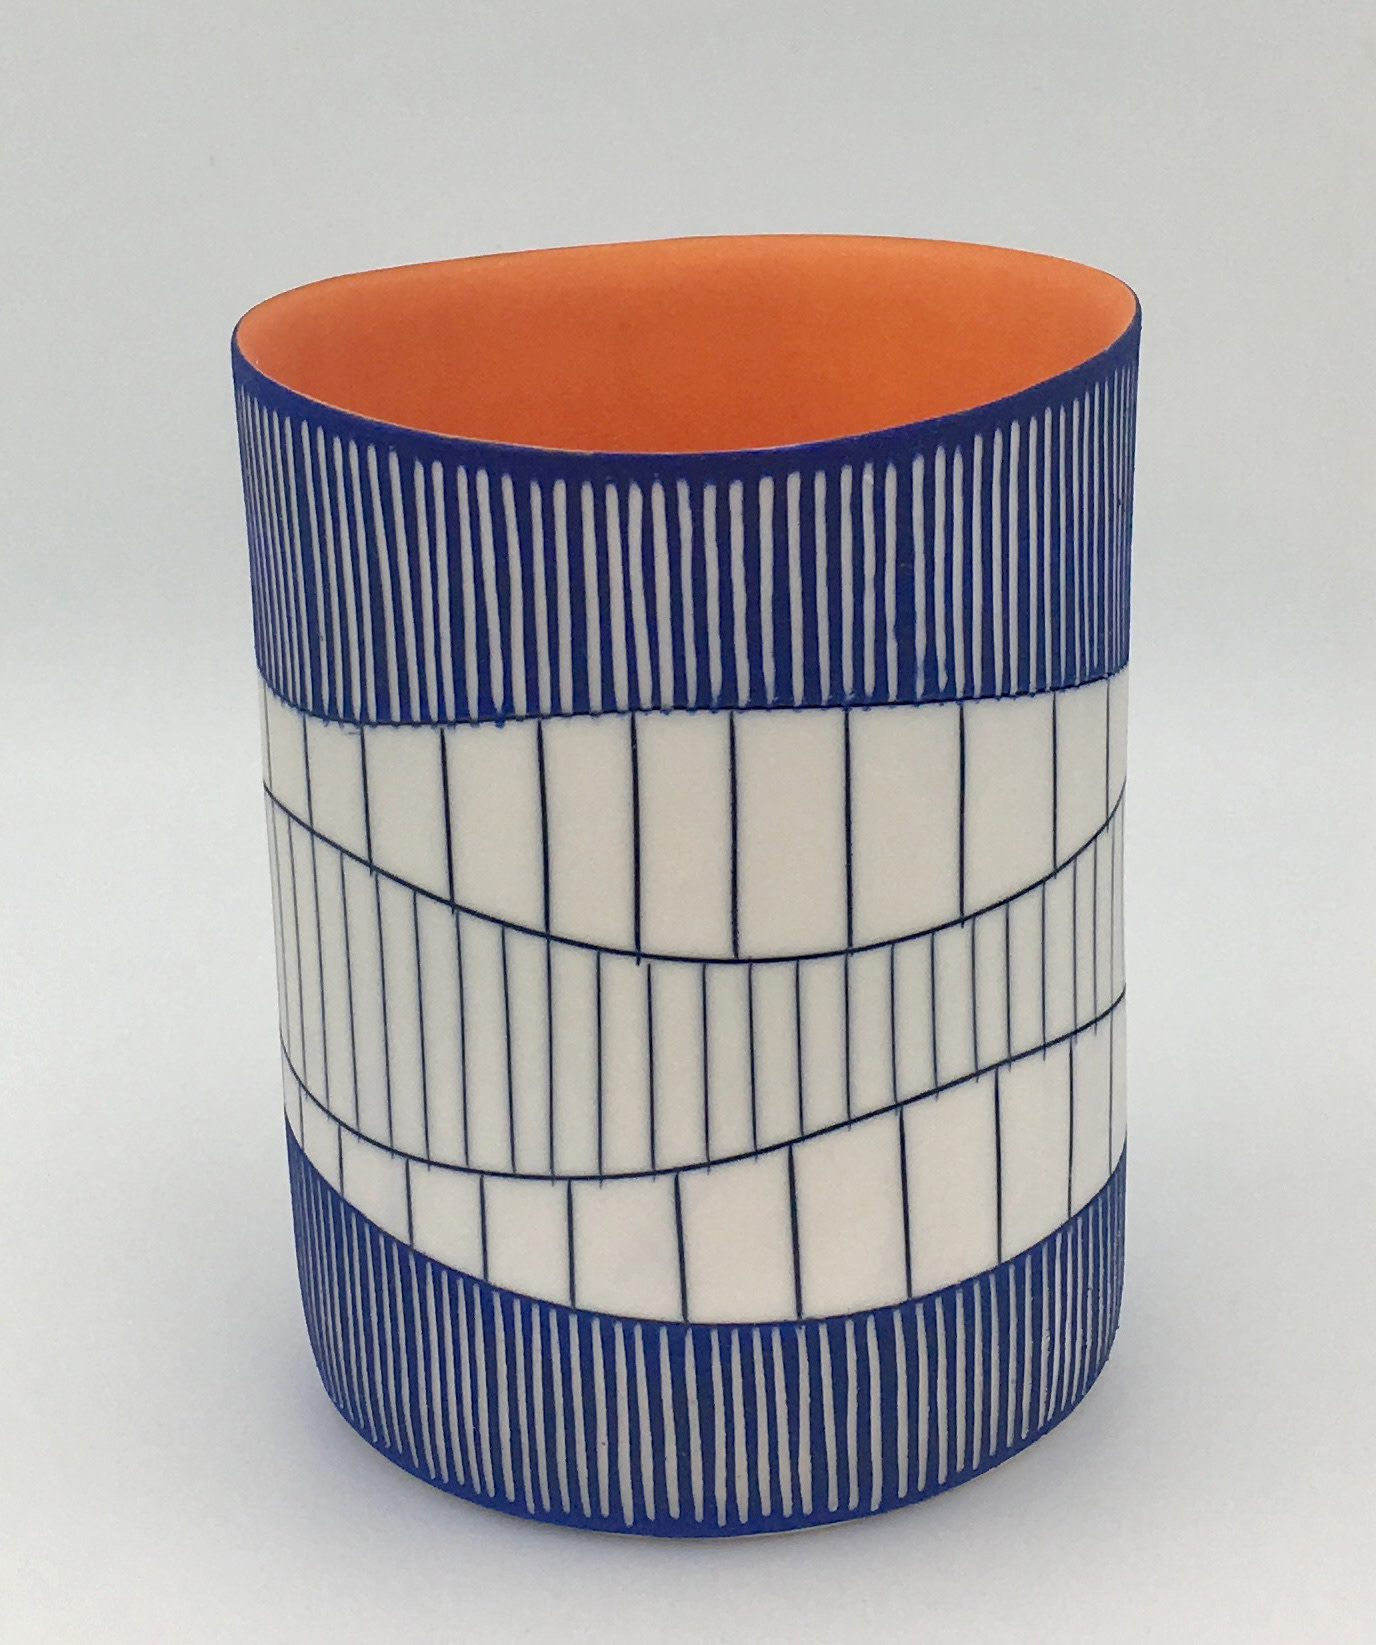 "<span class=""link fancybox-details-link""><a href=""/artists/195-lara-scobie/works/6526-lara-scobie-cylinder-vase-in-deep-blue-and-orange-2019/"">View Detail Page</a></span><div class=""artist""><strong>Lara Scobie</strong></div> <div class=""title""><em>Cylinder Vase in Deep Blue and Orange</em>, 2019</div> <div class=""medium"">Porcelain</div><div class=""copyright_line"">Own Art: £28 x 10 Months, 0% APR</div>"